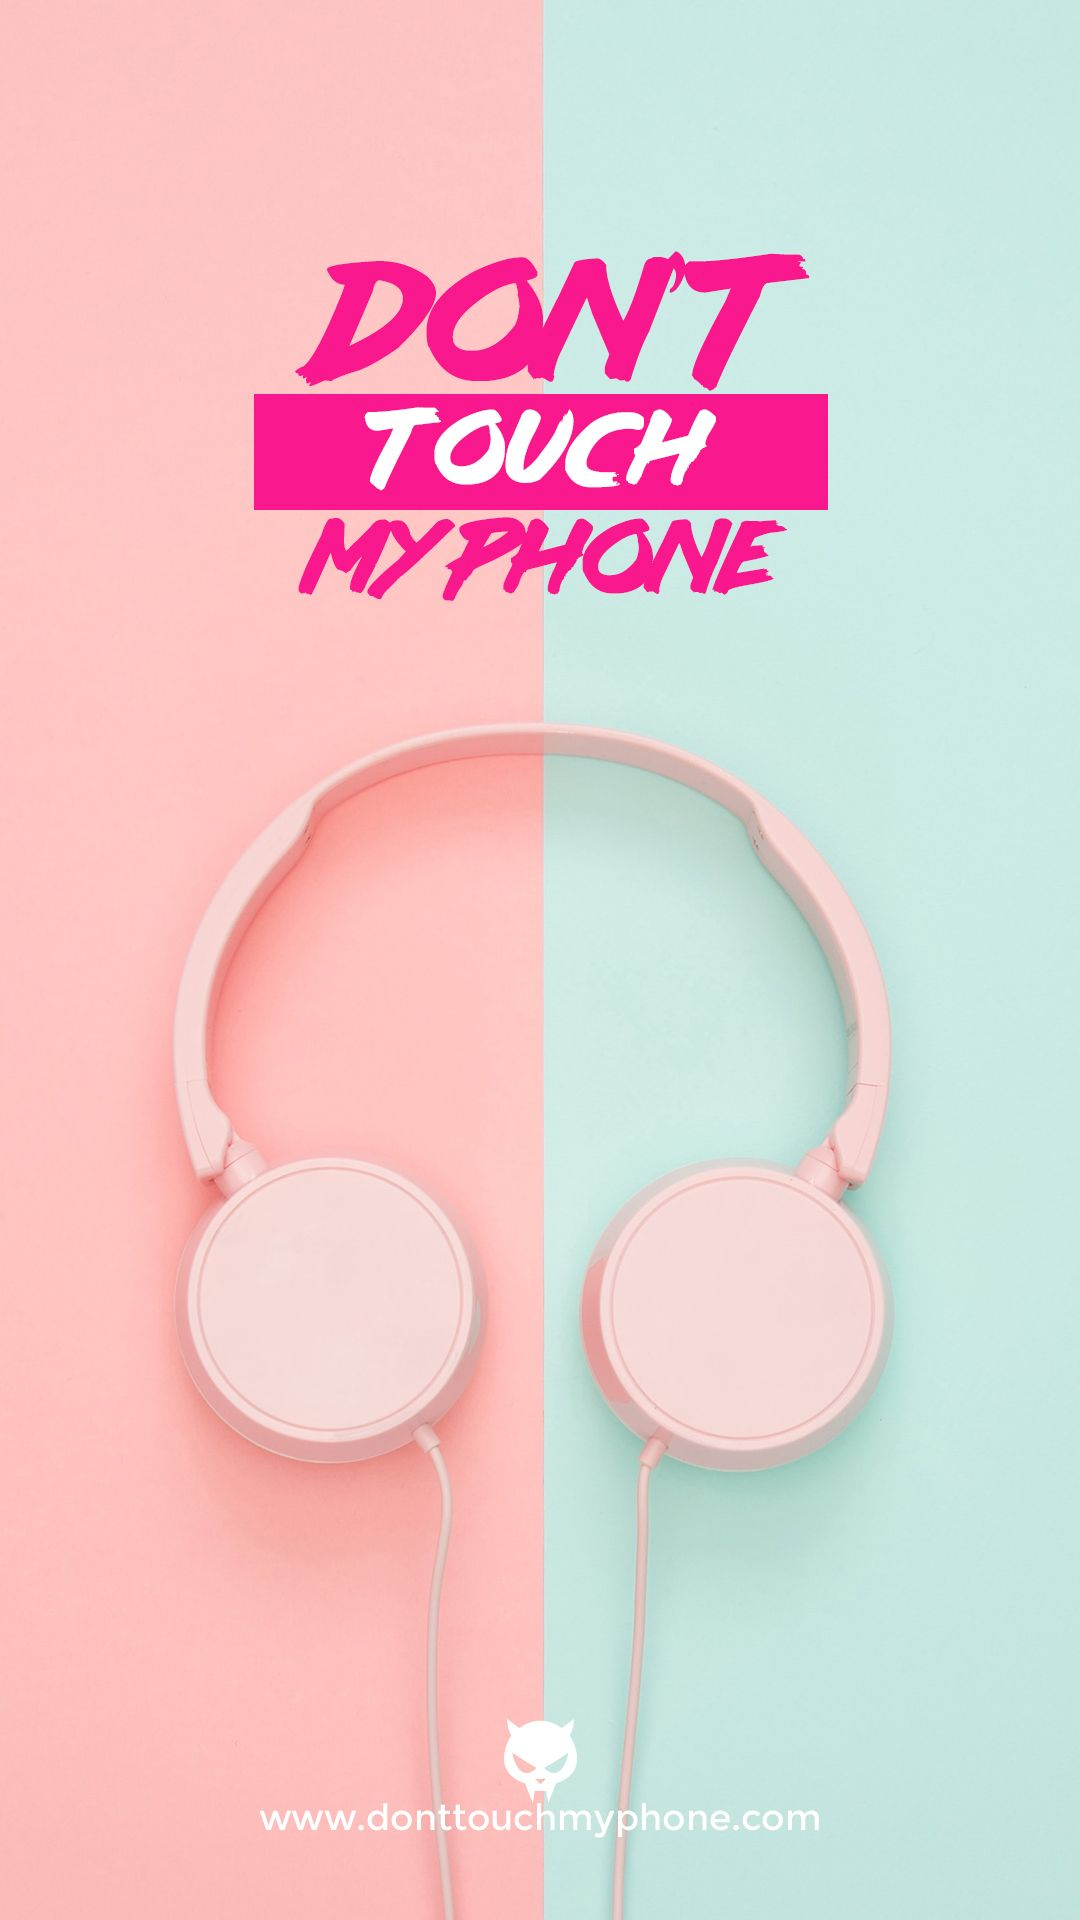 Don T Touch My Phone Girly Wallpapers Wallpaper Layar Kunci Layar Kunci Wallpaper Layar Cute dont toch my phone skull scary cool wallpapers lock screen broken screen don't touch my phone locked password. don t touch my phone girly wallpapers